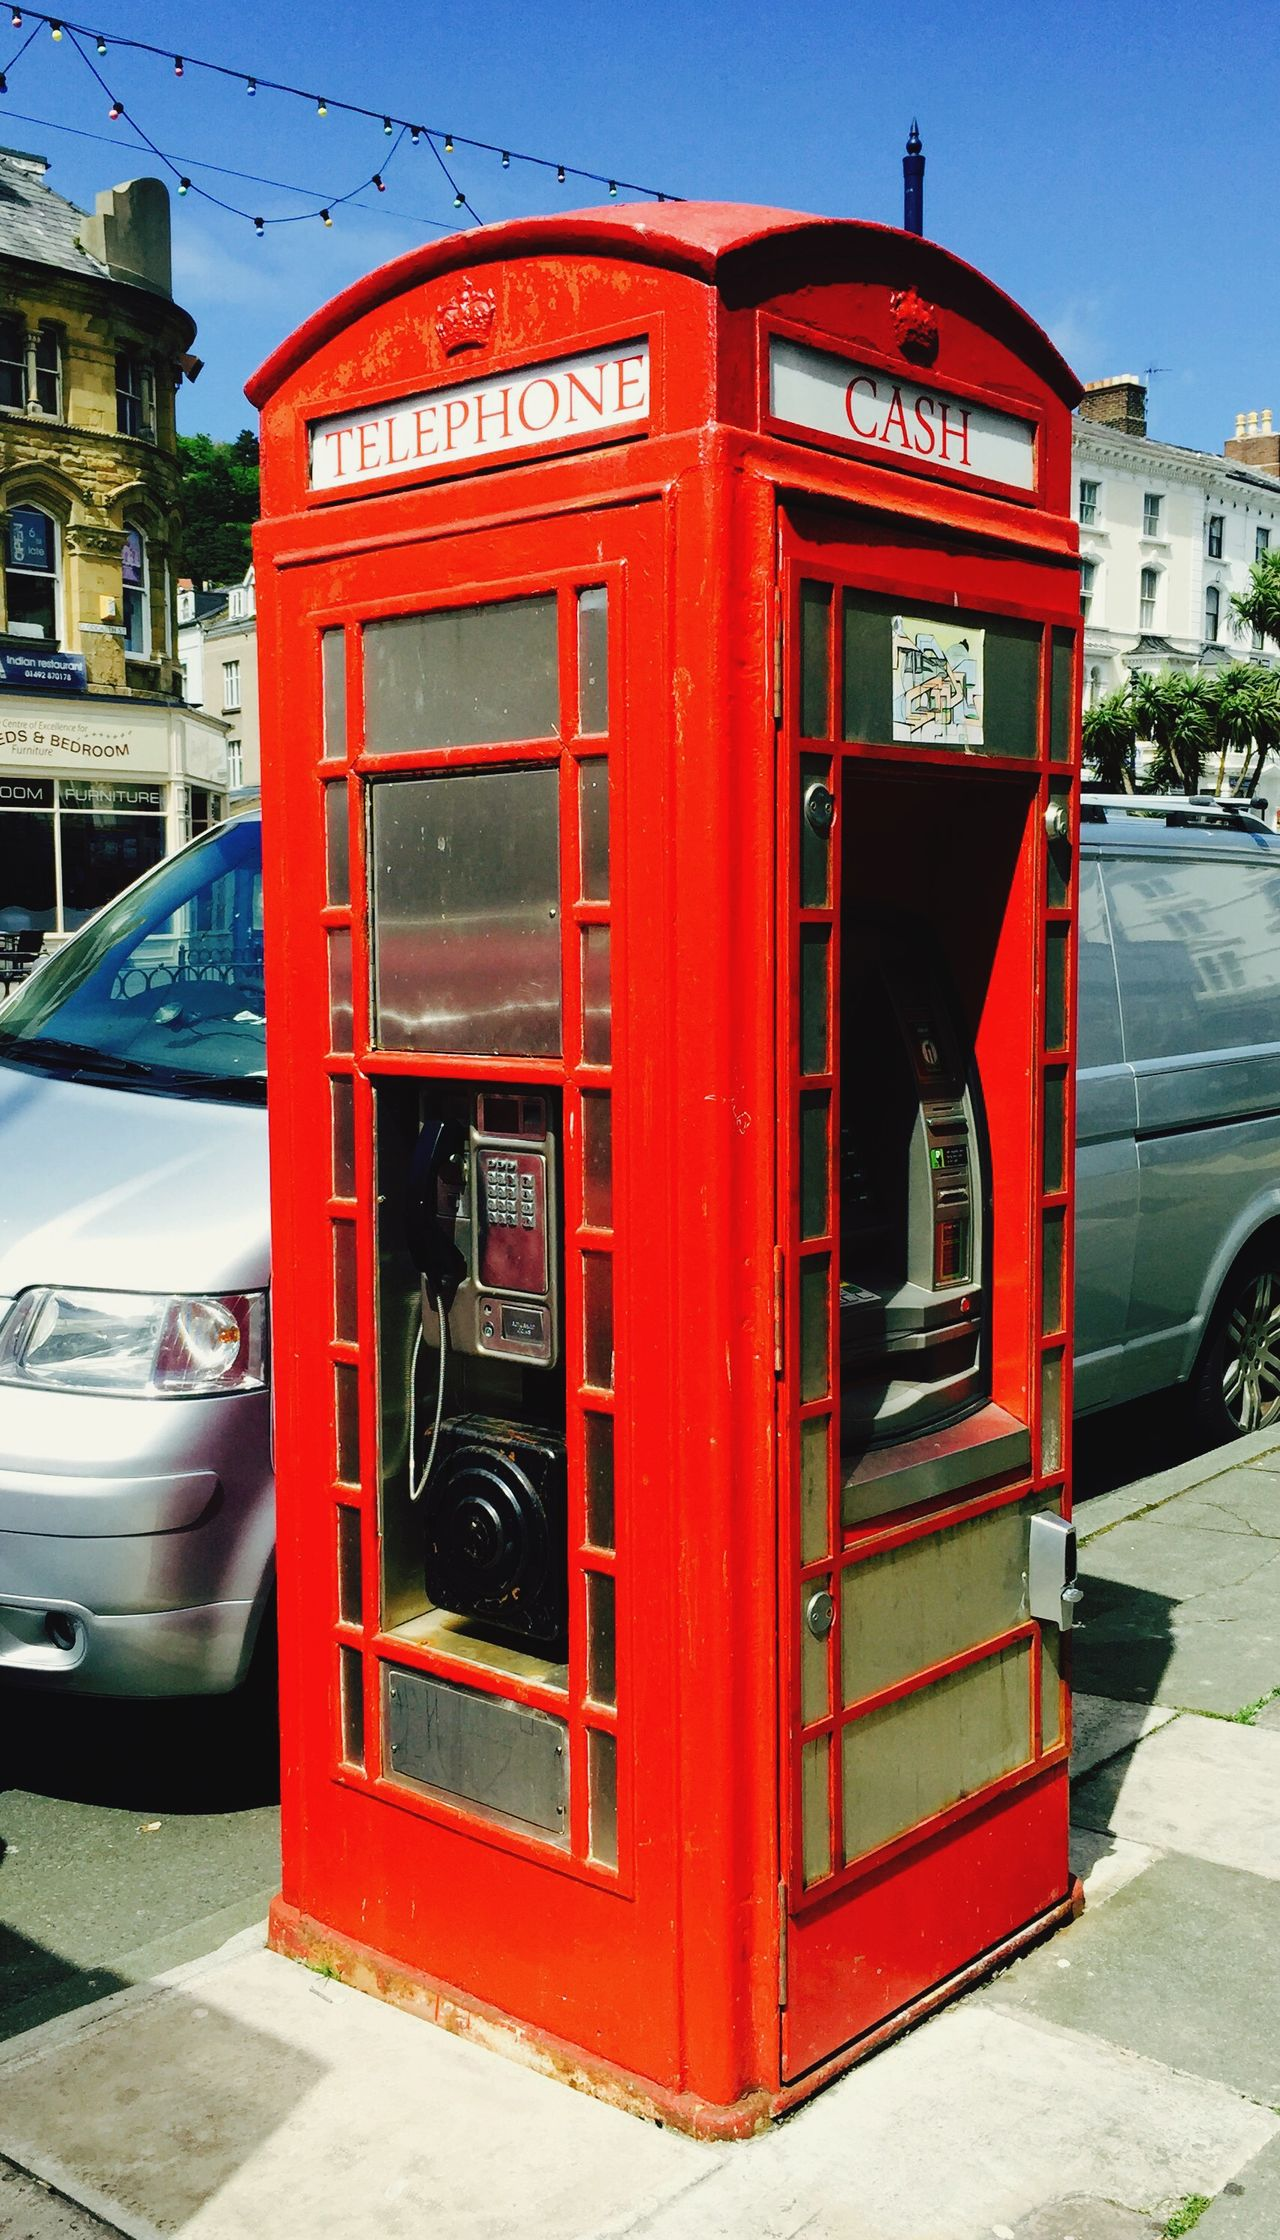 Vintage London Phone Booth London Phone Booth Vintage Travel Photography Londonlife Llandudno Streetphotography EyeEm Best Shots Red